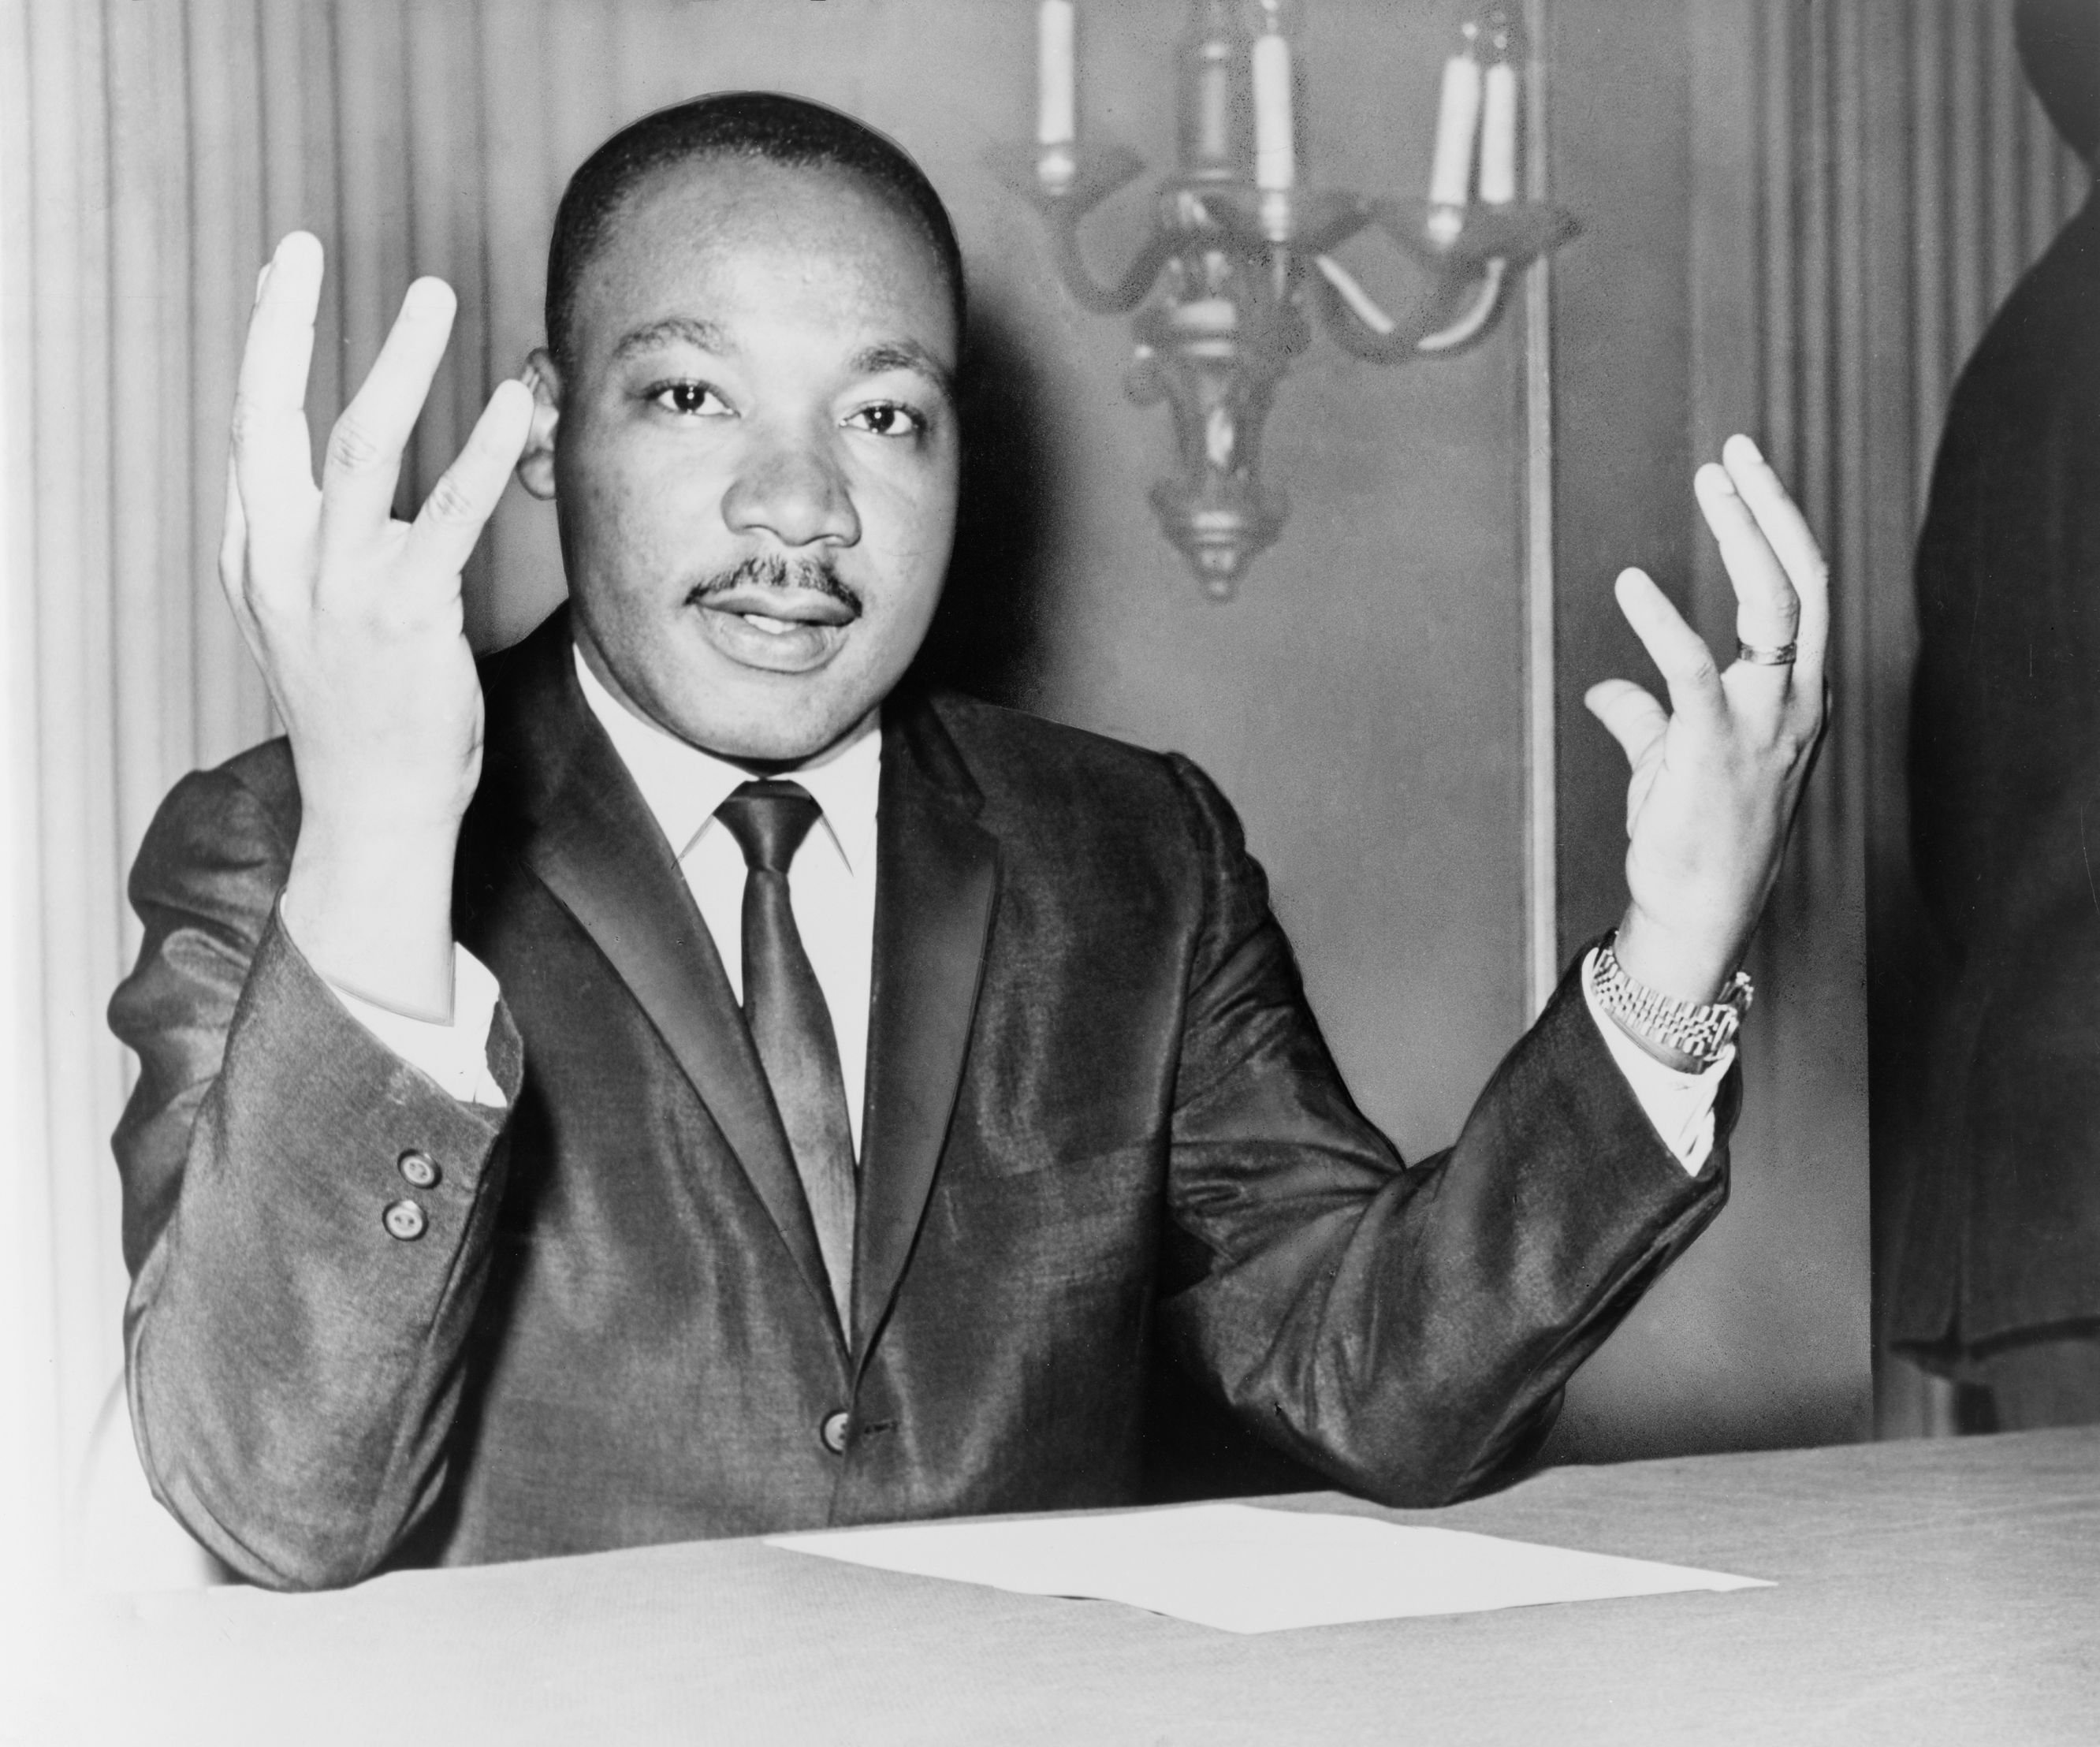 martin luther king - photo #26